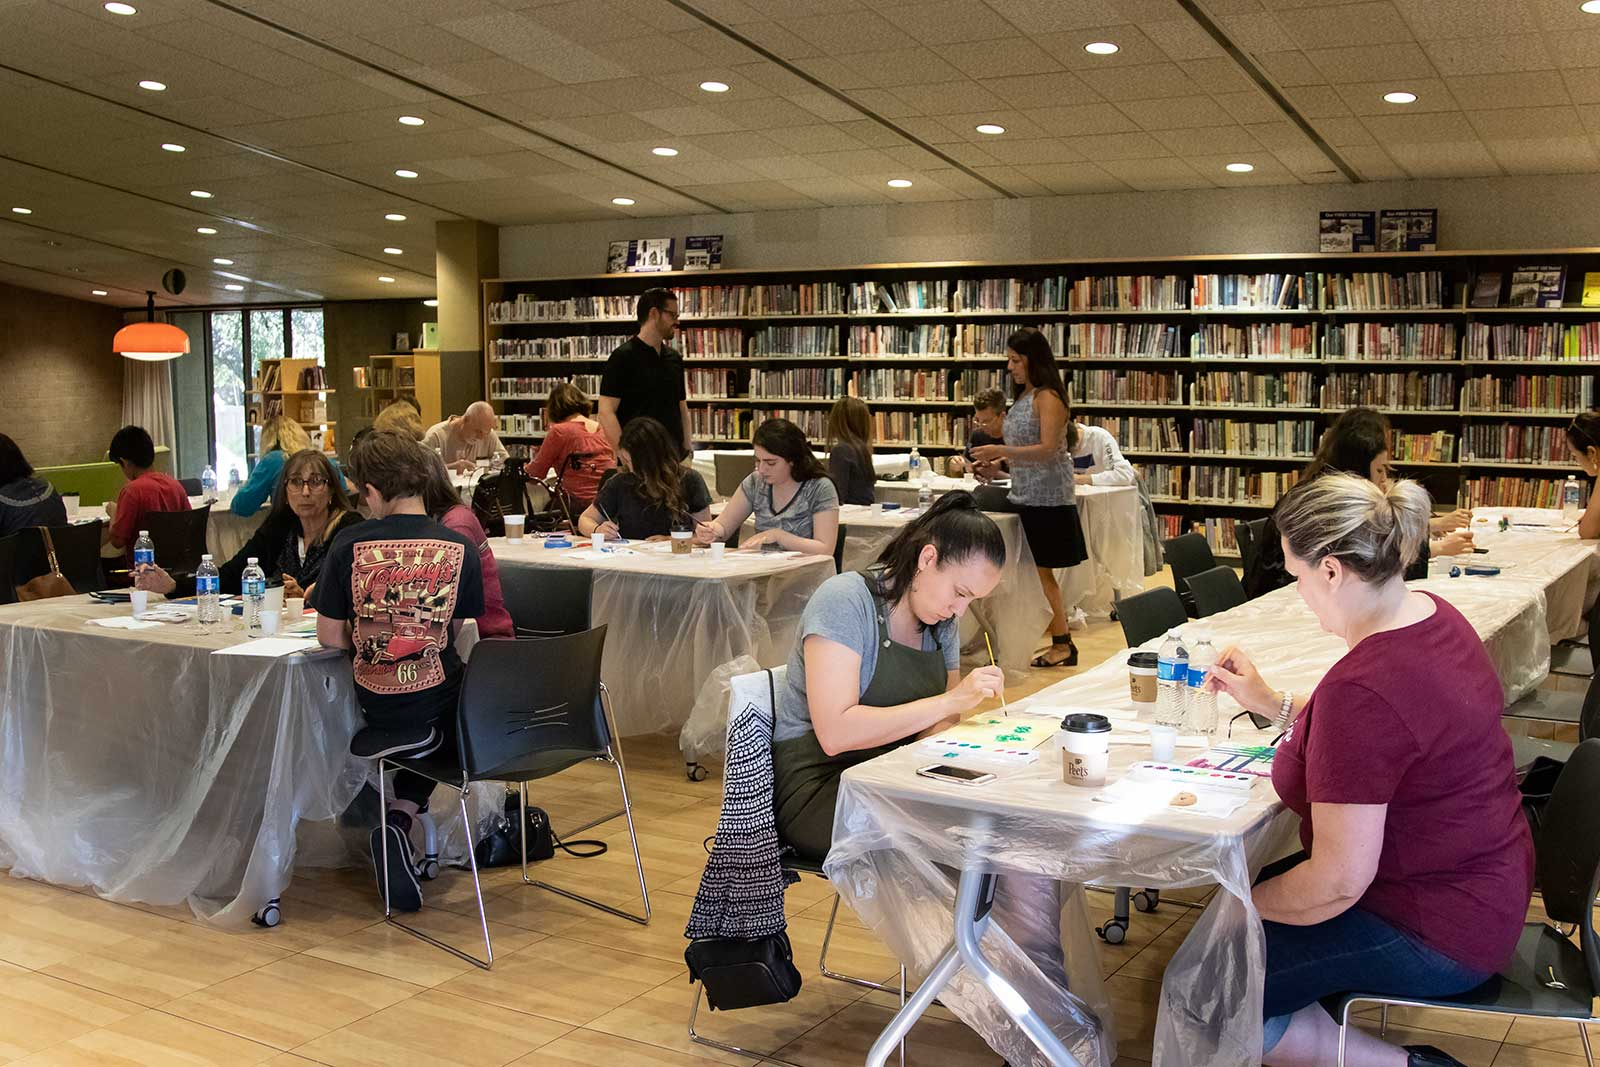 Paint and coffee at the Chevy Chase Library in Glendale, CA.